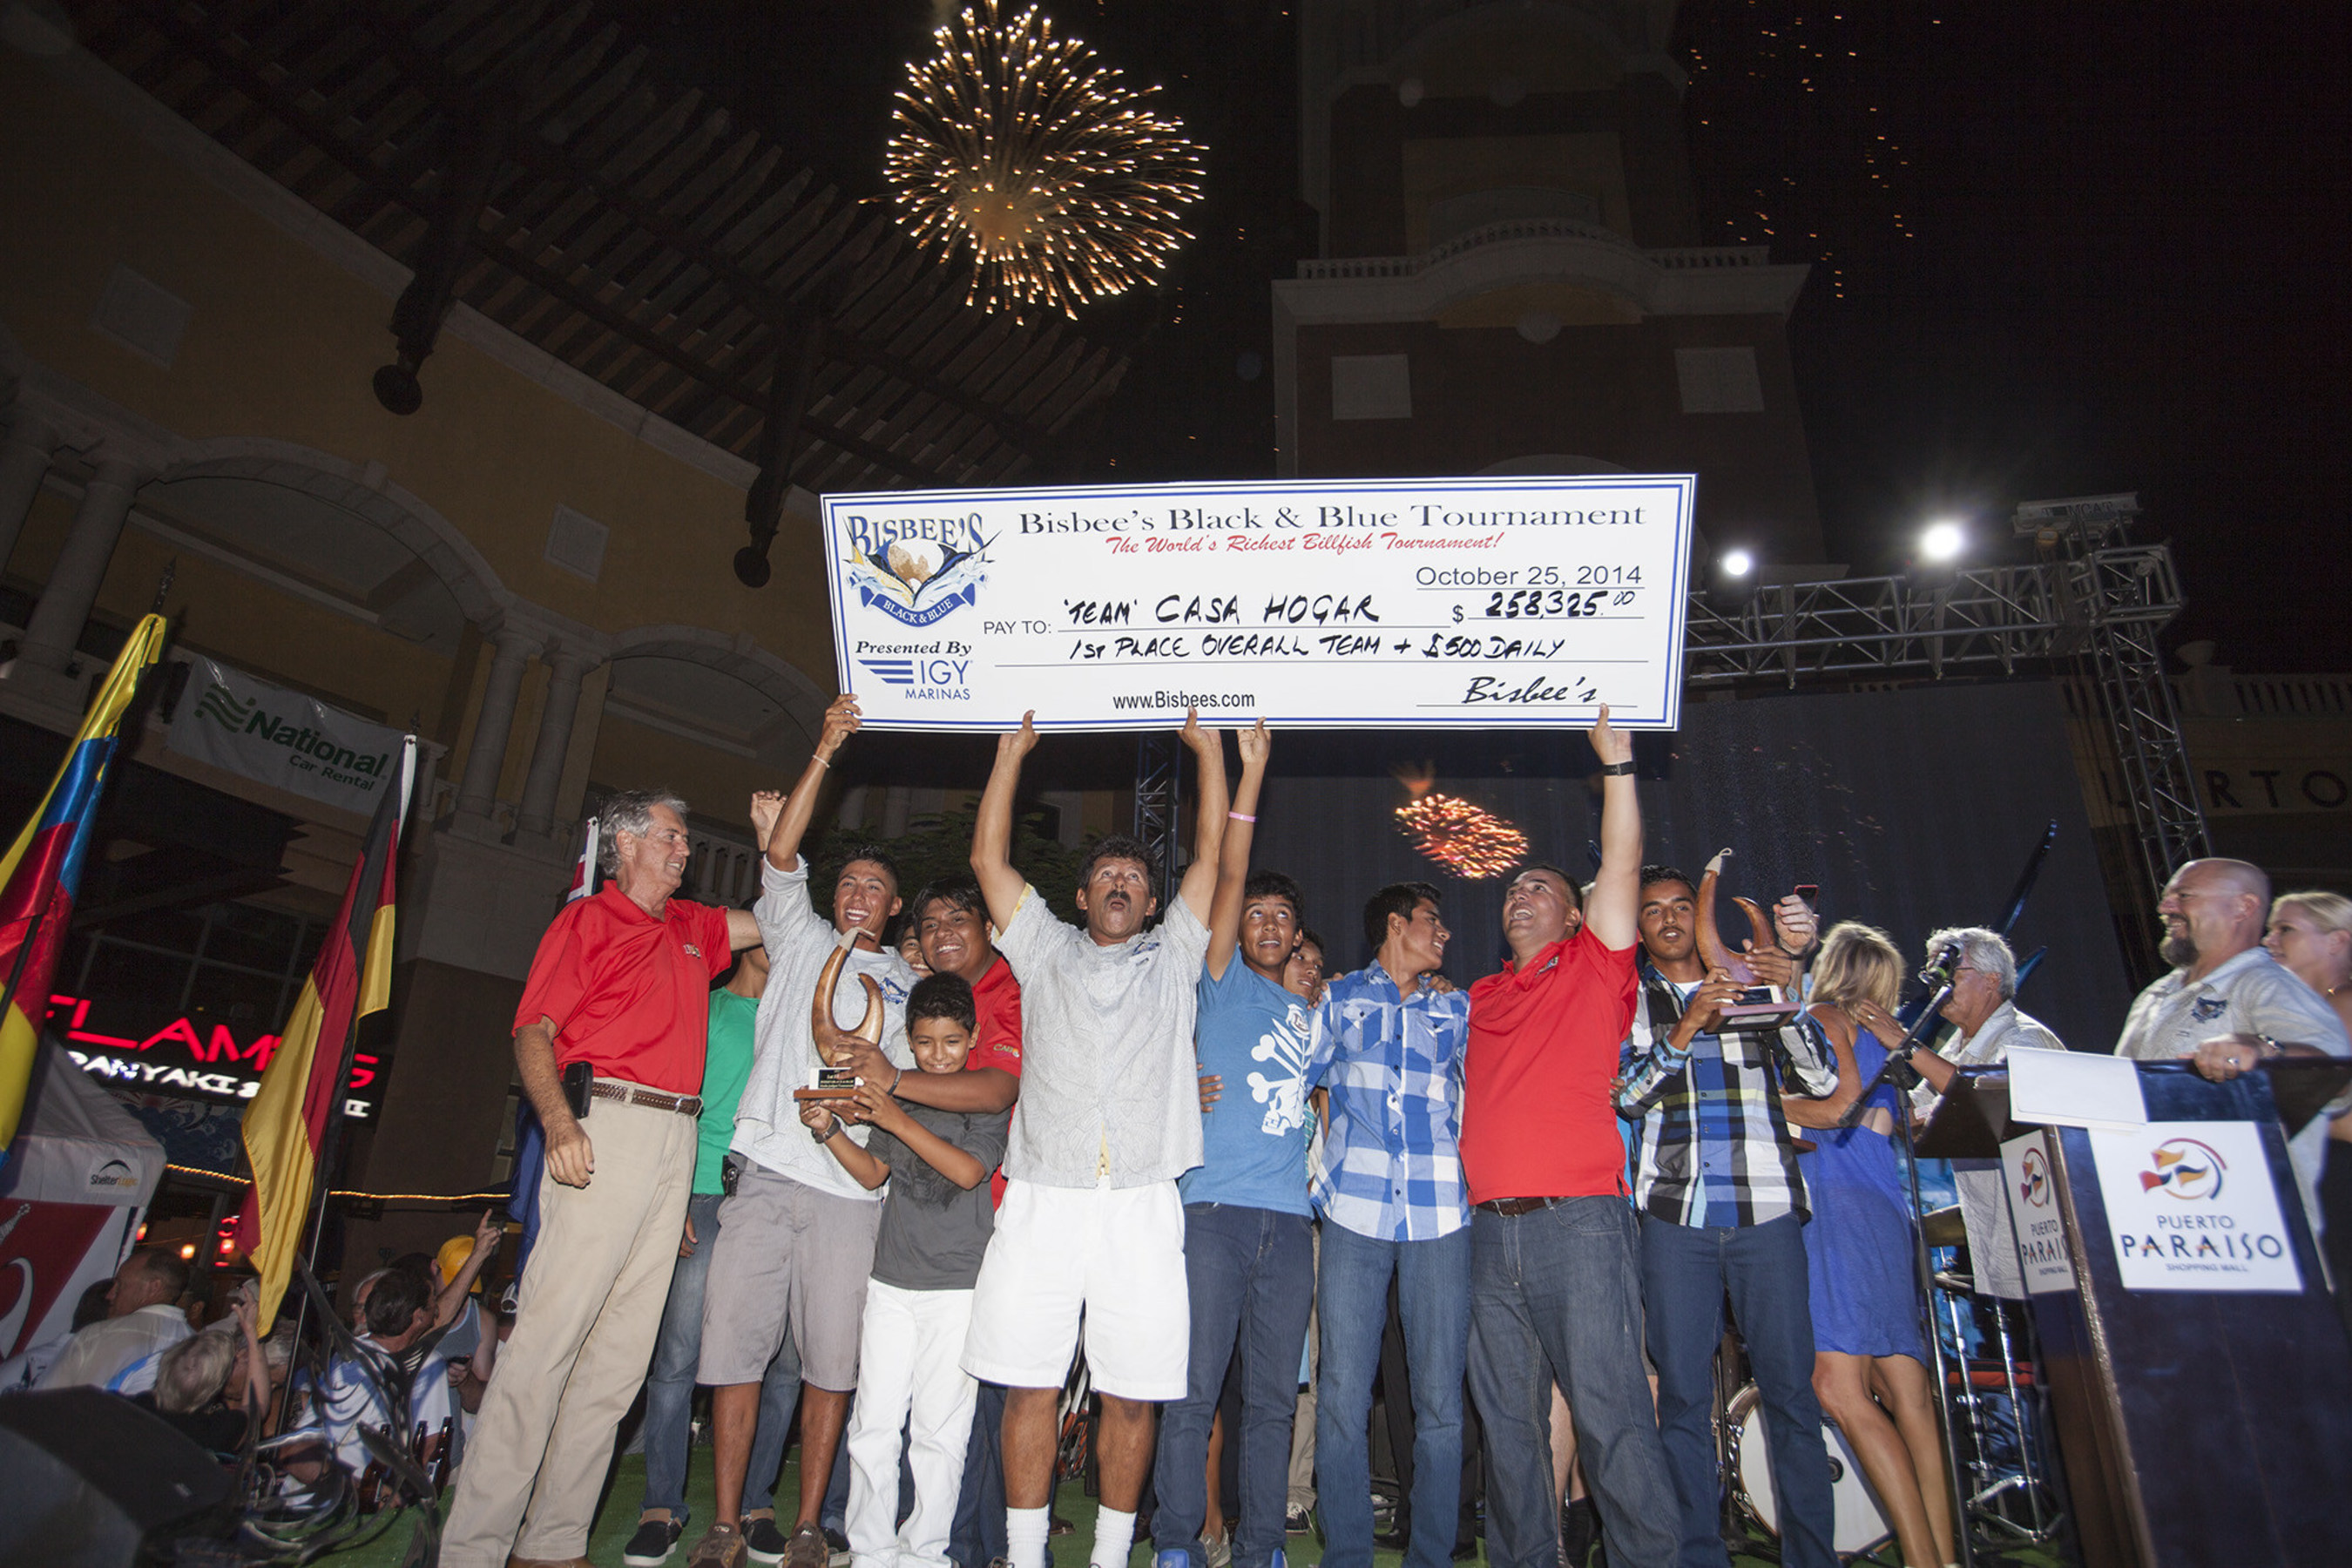 A group of orphans and their caregiver from Cabo San Lucas' Casa Hogar wins $250K in Bisbee's Black & Blue Fishing Tournament. Despite doubts about the tournament in the wake of the devastation of Hurricane Odile, 129 boats entered this year and more than $2 million in total prize money was given out.